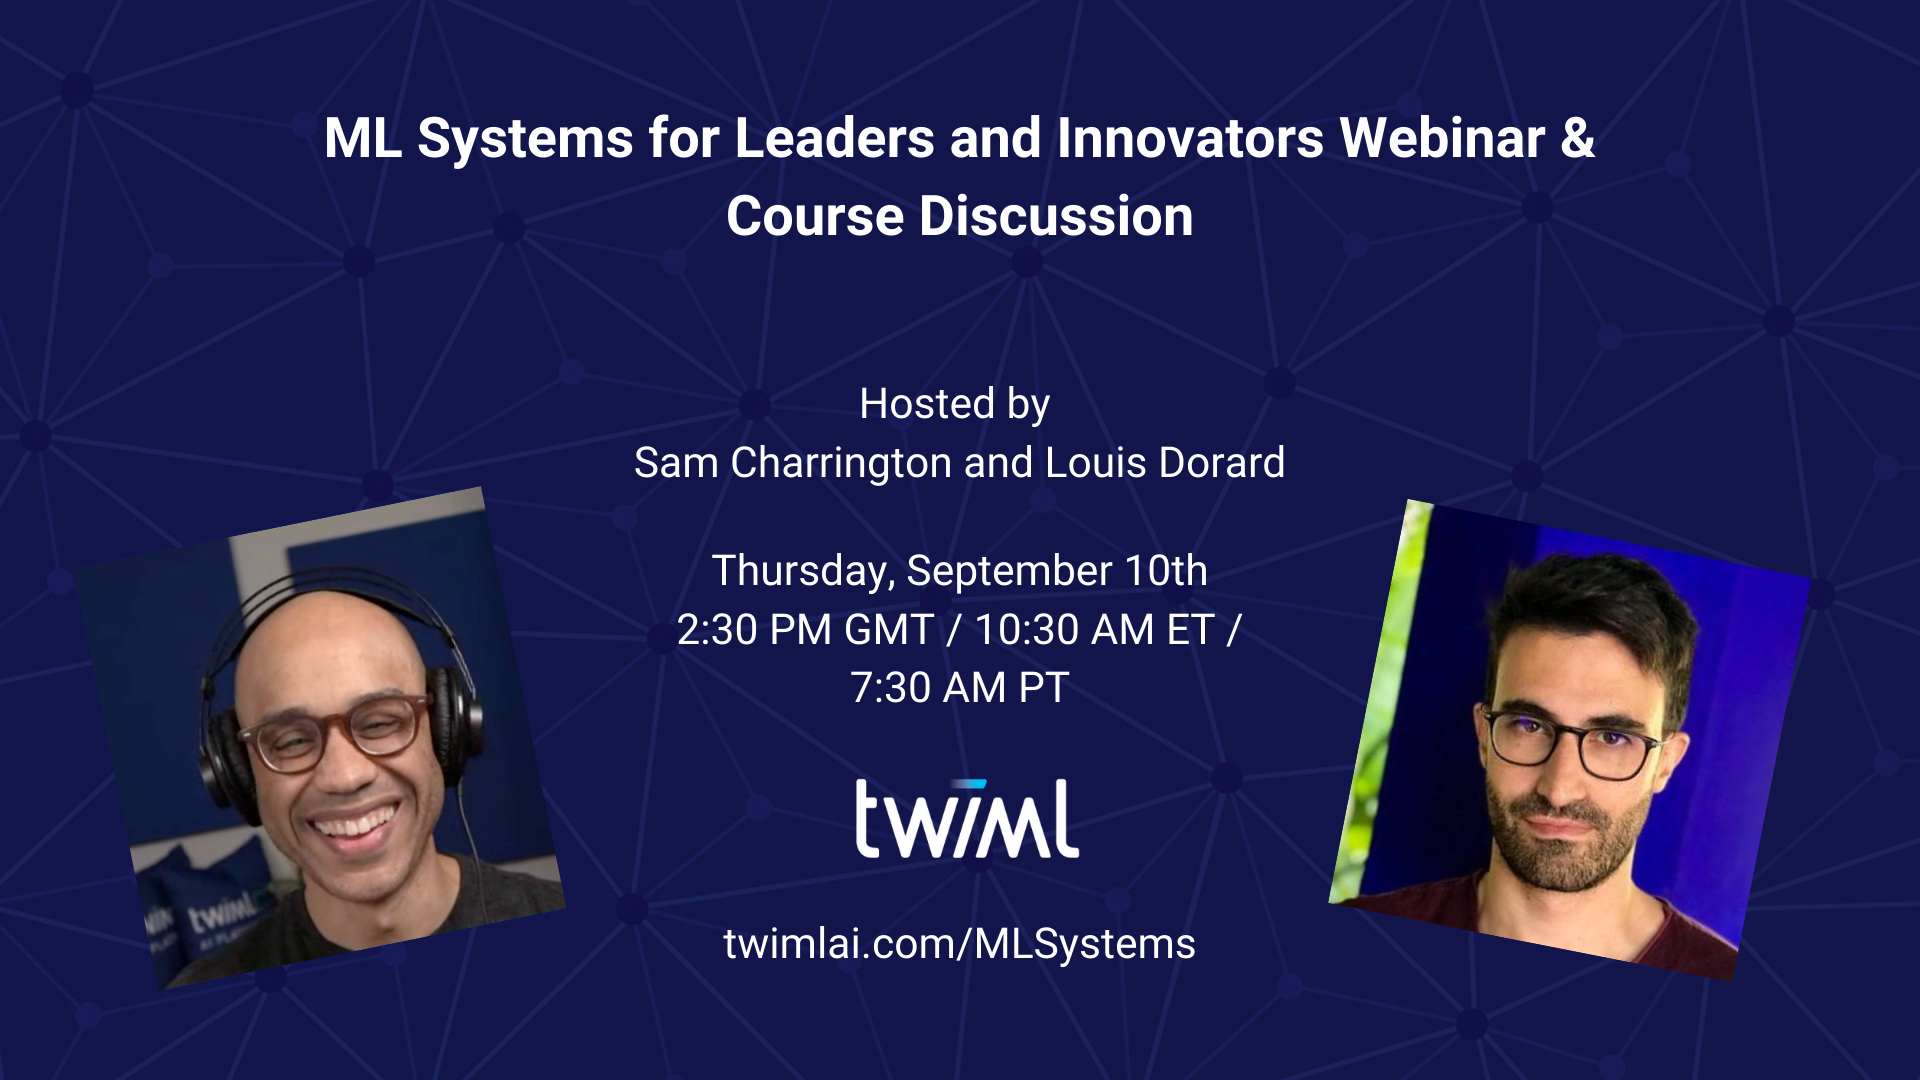 ML Systems for Leaders & Innovators Hosted by Sam Charrington and Louis Dorard Thursday, September 10th 2:30pm GMT / 10:30am ET / 7:30am PT For more info visit twimlai.com/MLSystems Thursday, September 10th 2:30 PM GMT / 10:30 AM ET / 7:30 AM PT